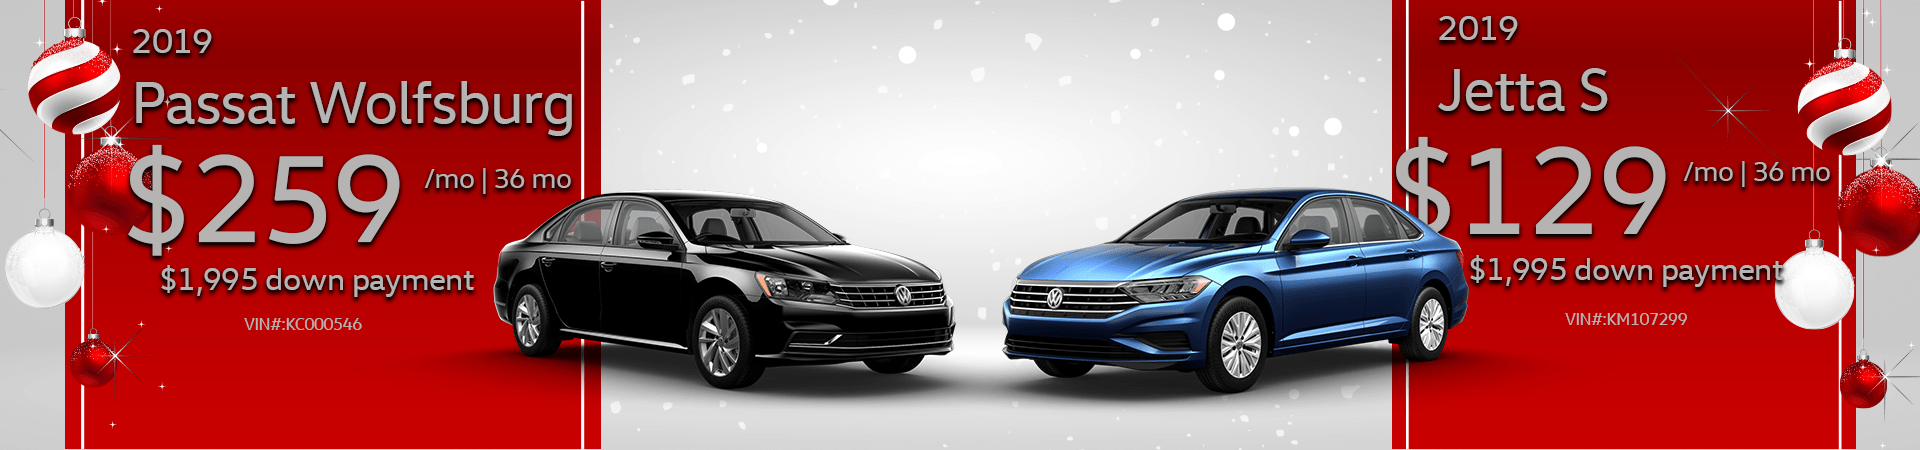 December 2018 Passat & Jetta Offer